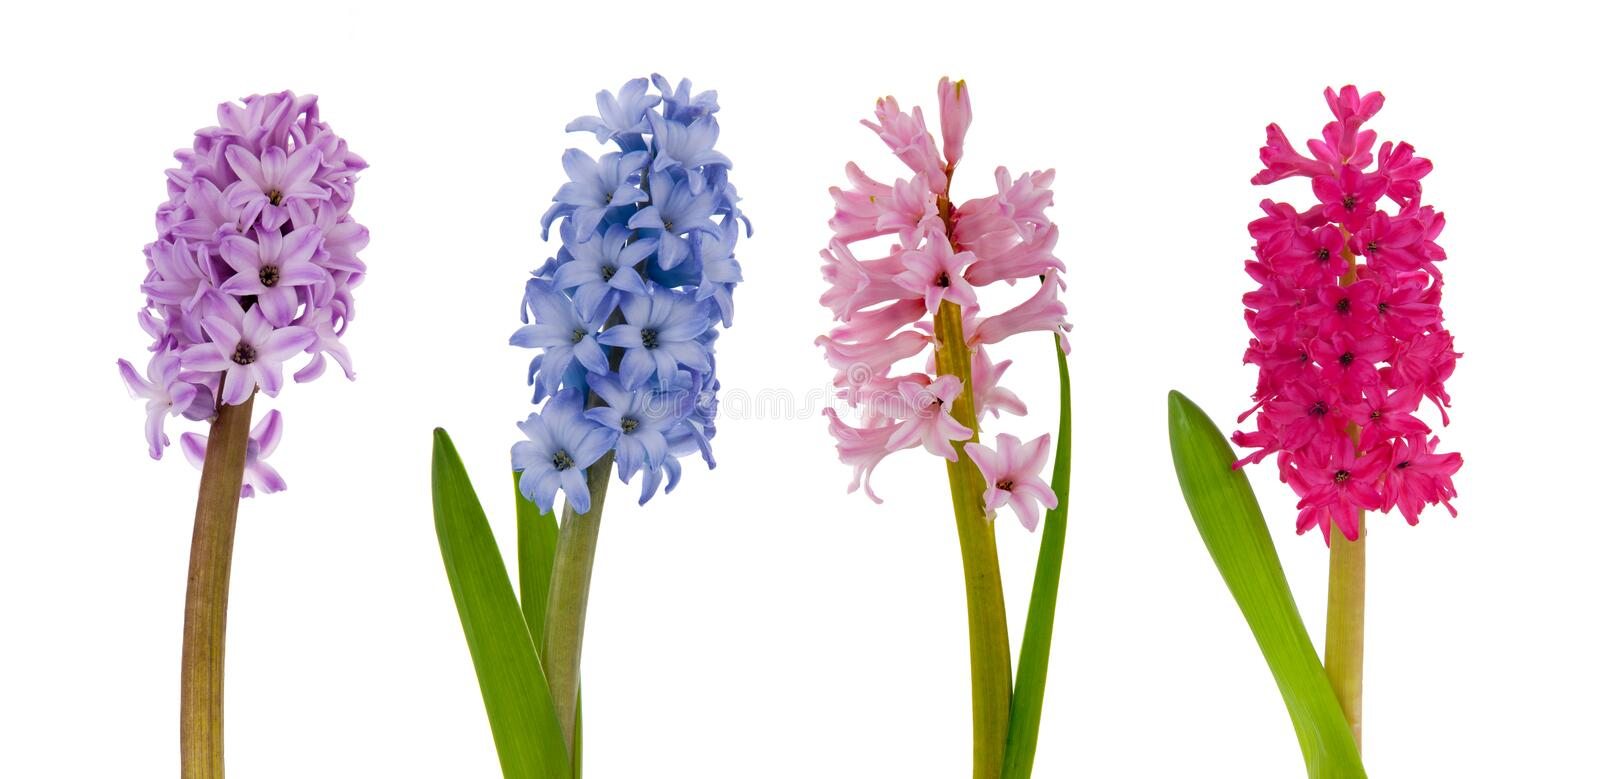 Download Blooming Hyacinths Stock Photography - Image: 38443522